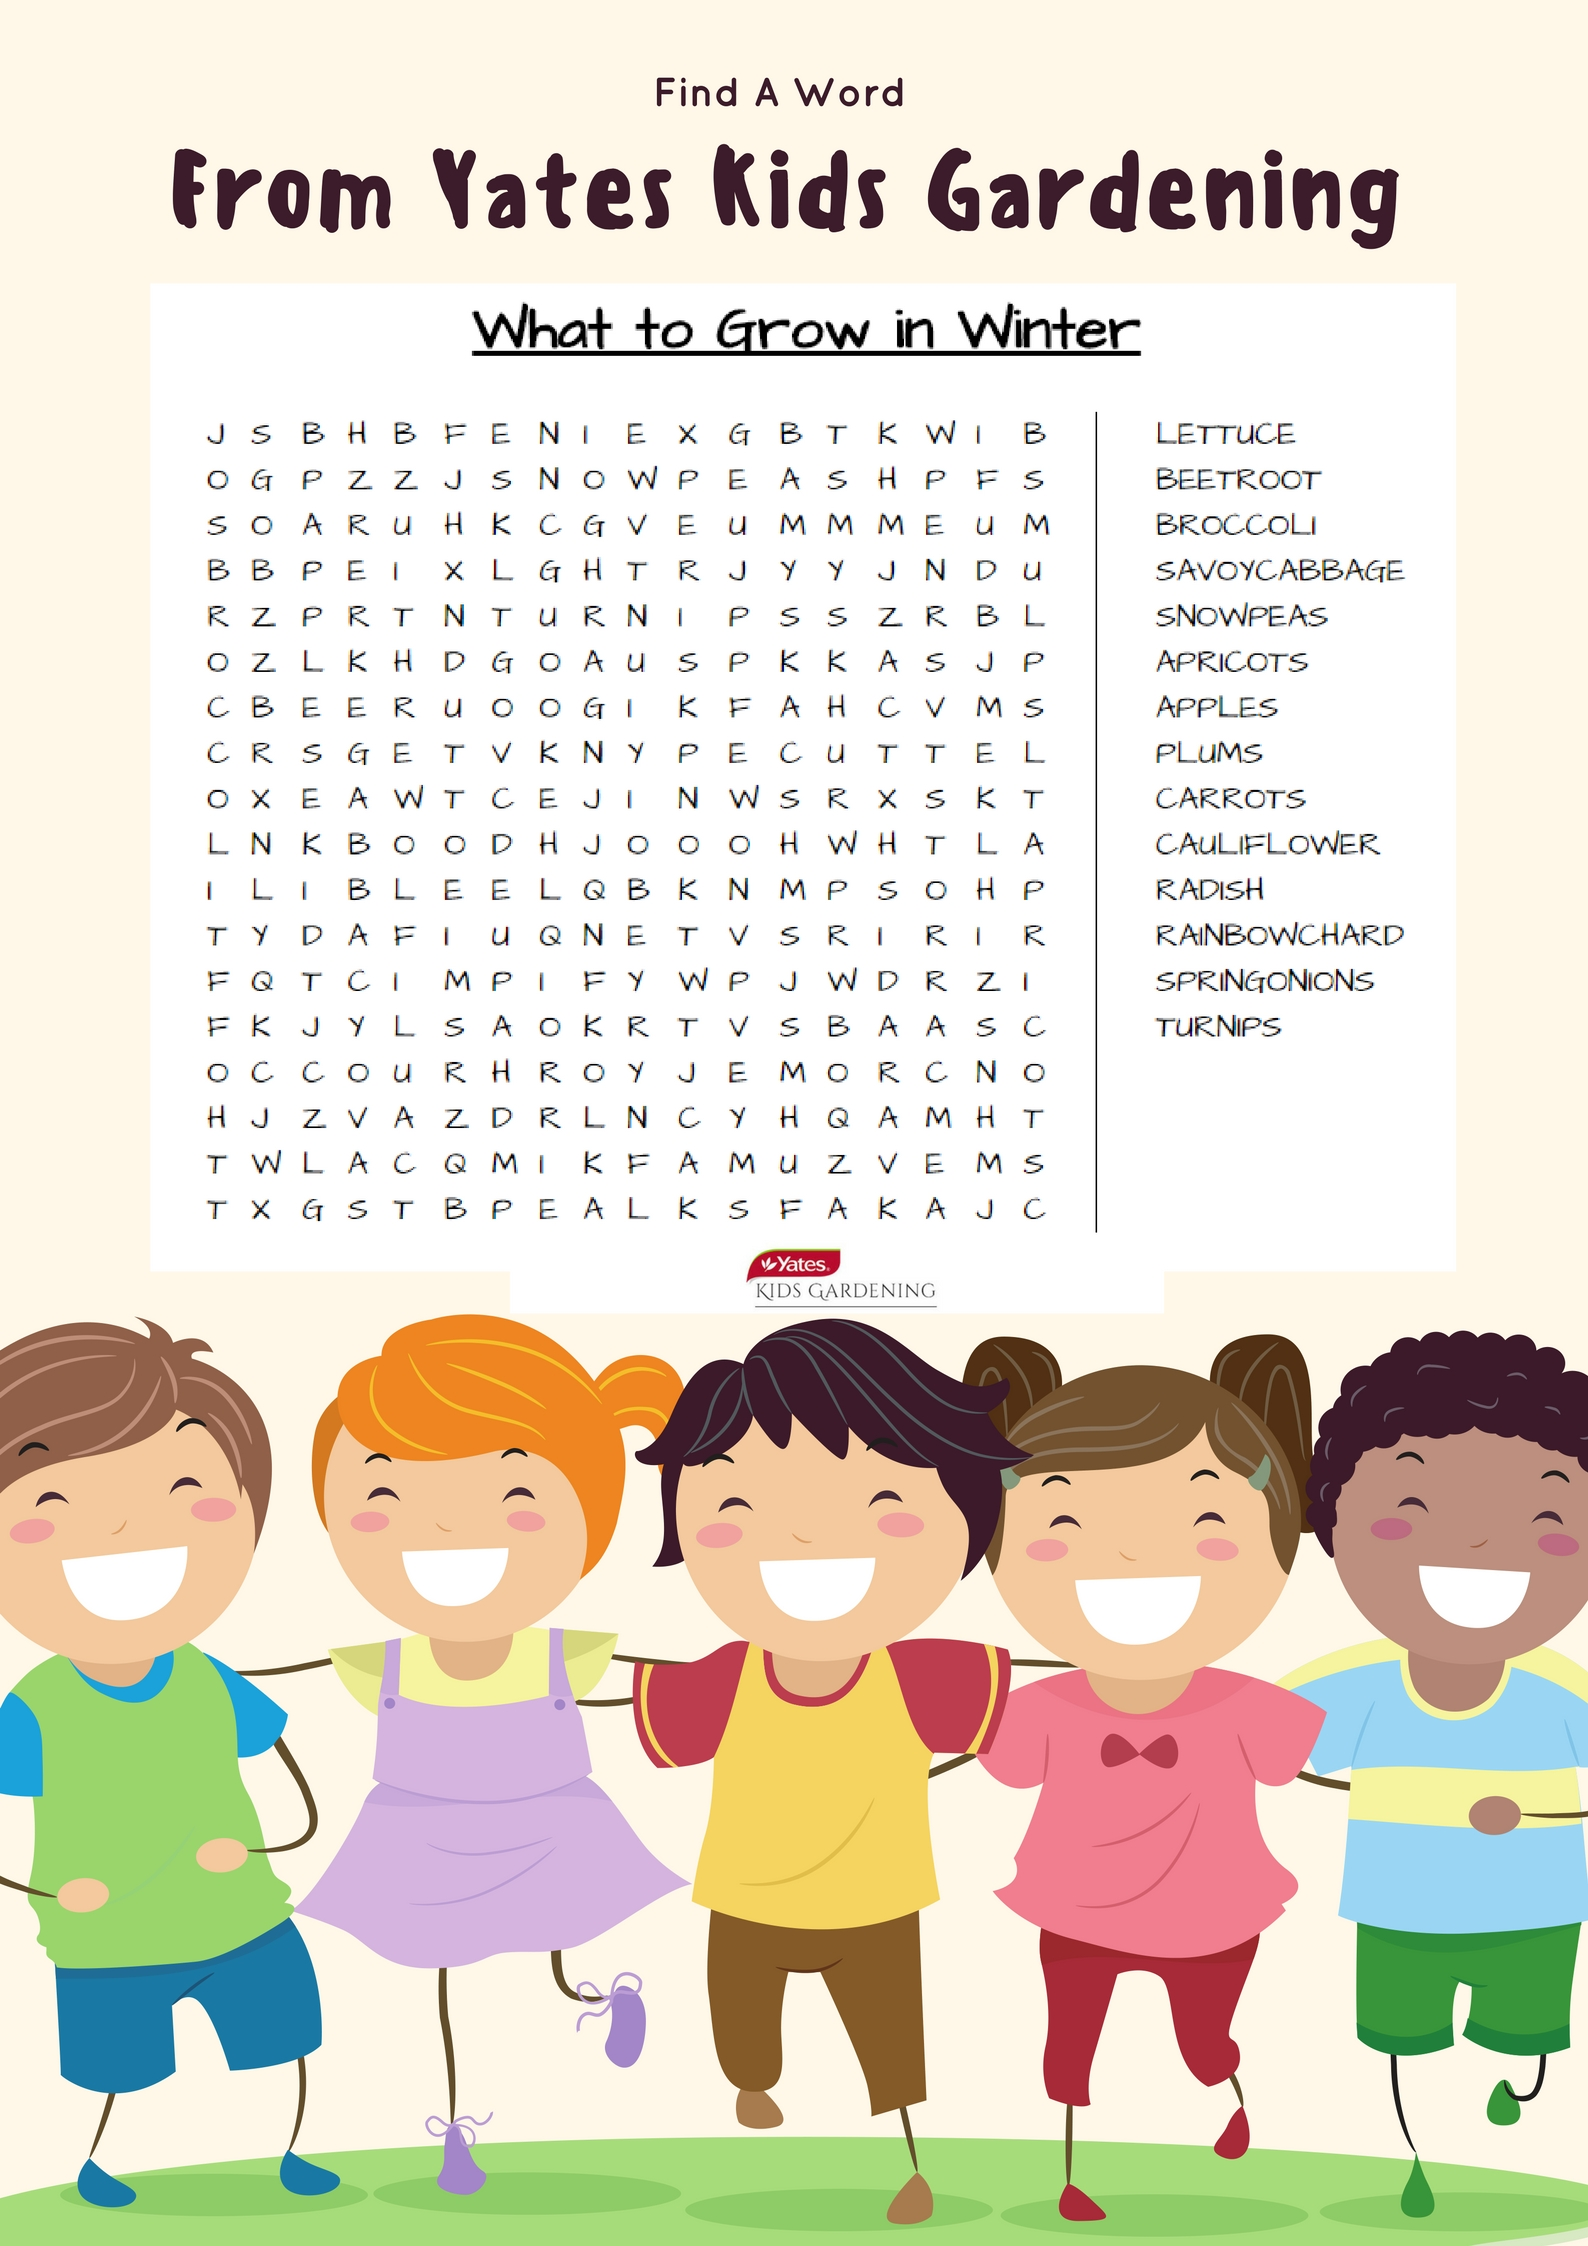 Kids-Find-A-Word-What-to-grow-Winter.jpg